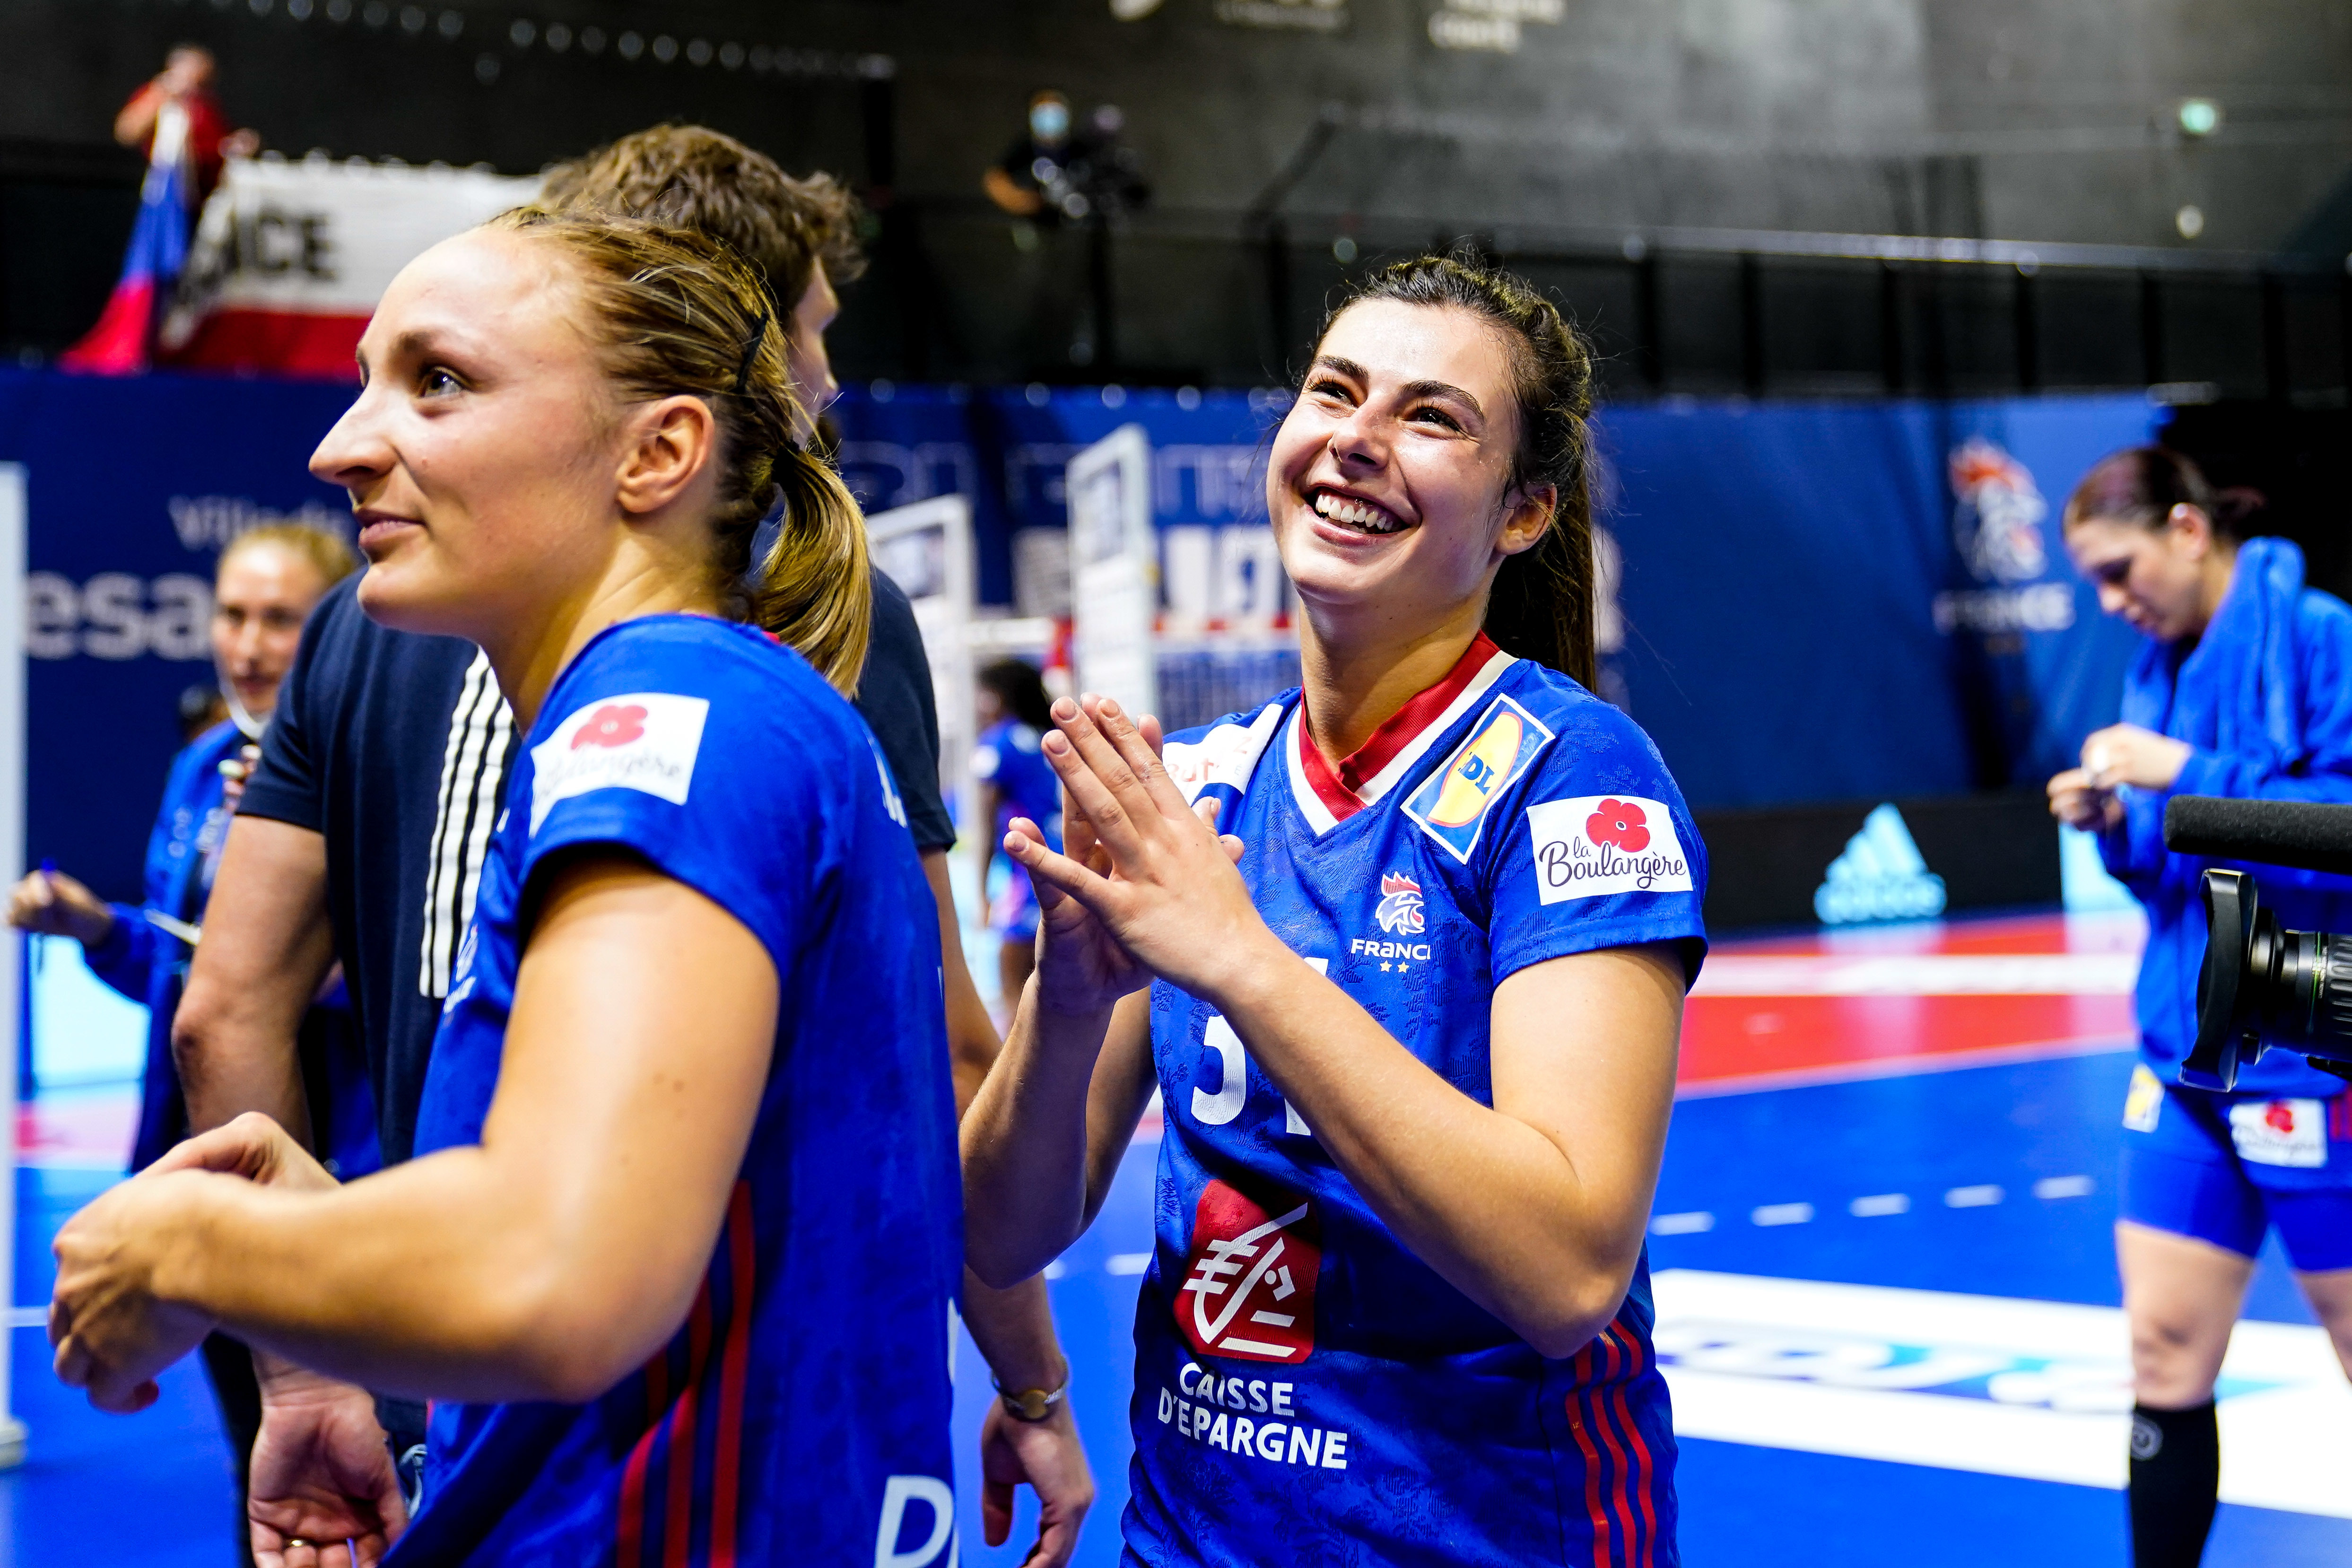 Lucie GRANIER of France celebrate during the European Championship Women, Qualification match between France and Czech Republic on October 6, 2021 in Besancon, France. (Photo by Hugo Pfeiffer/Icon Sport) - Lucie GRANIER - Besancon (France)